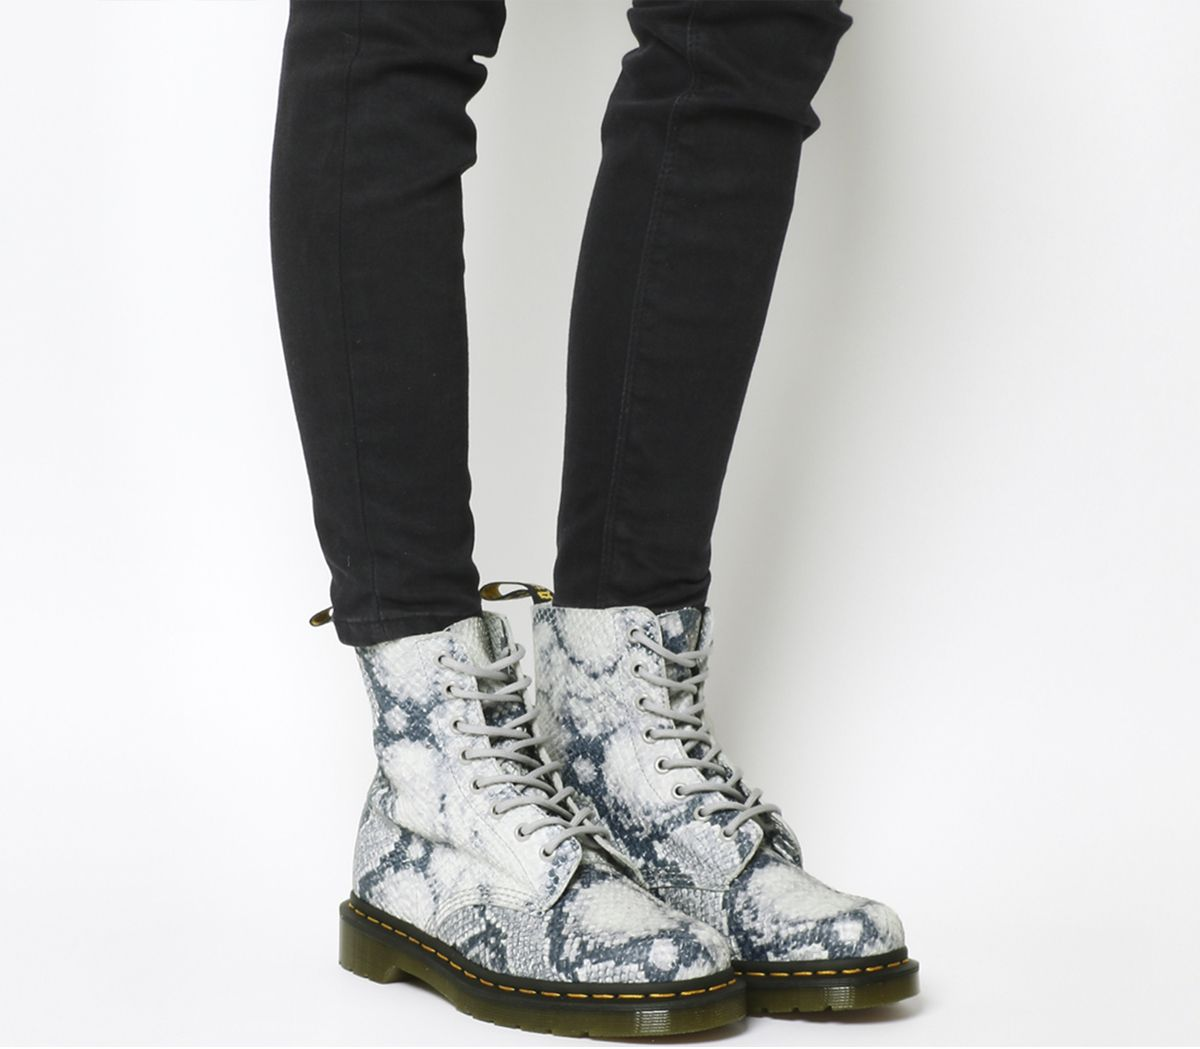 new concept 3da4a ff526 Dr. Martens 8 Eyelet Lace Up Boots Light Grey Metallic Snake Skin ...